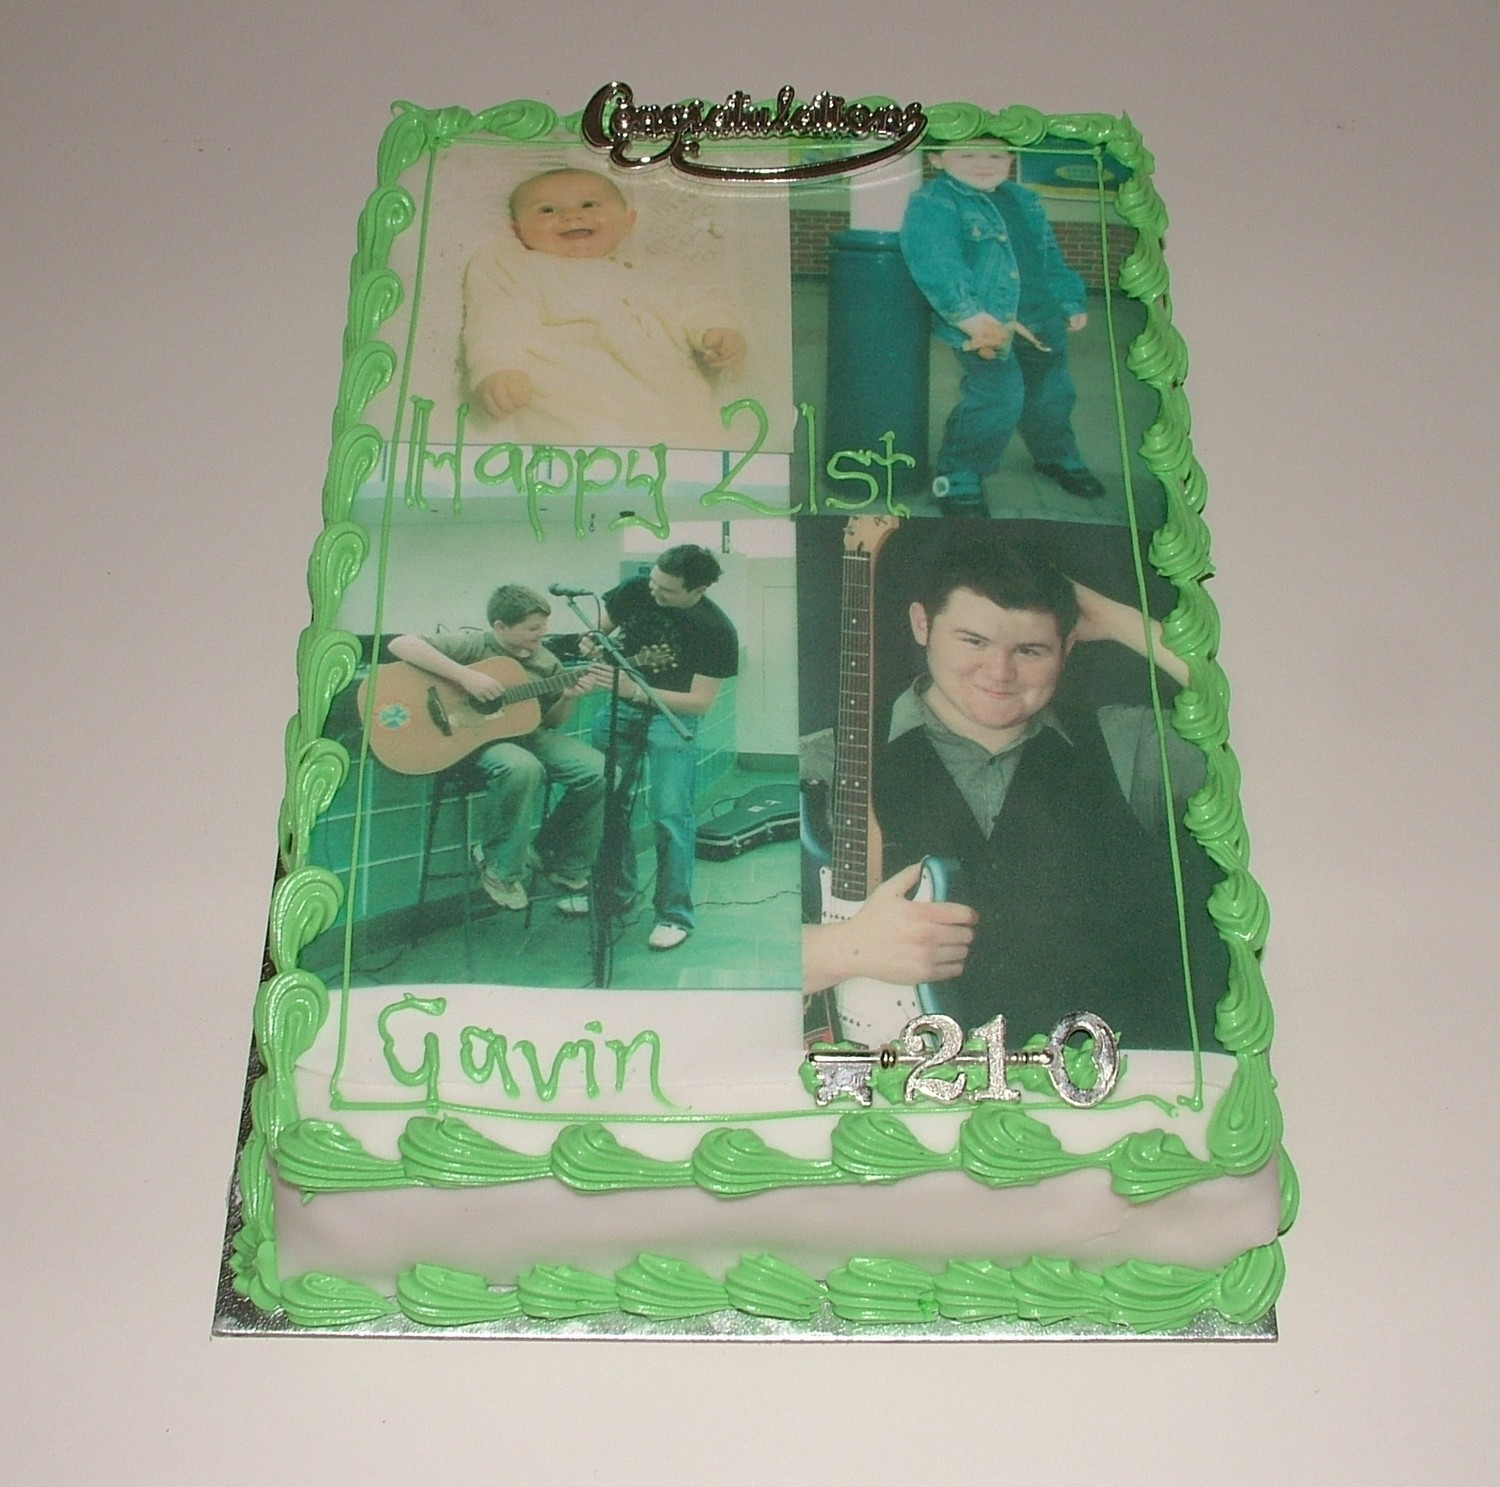 Photo Cake - email your image to be put on this cake